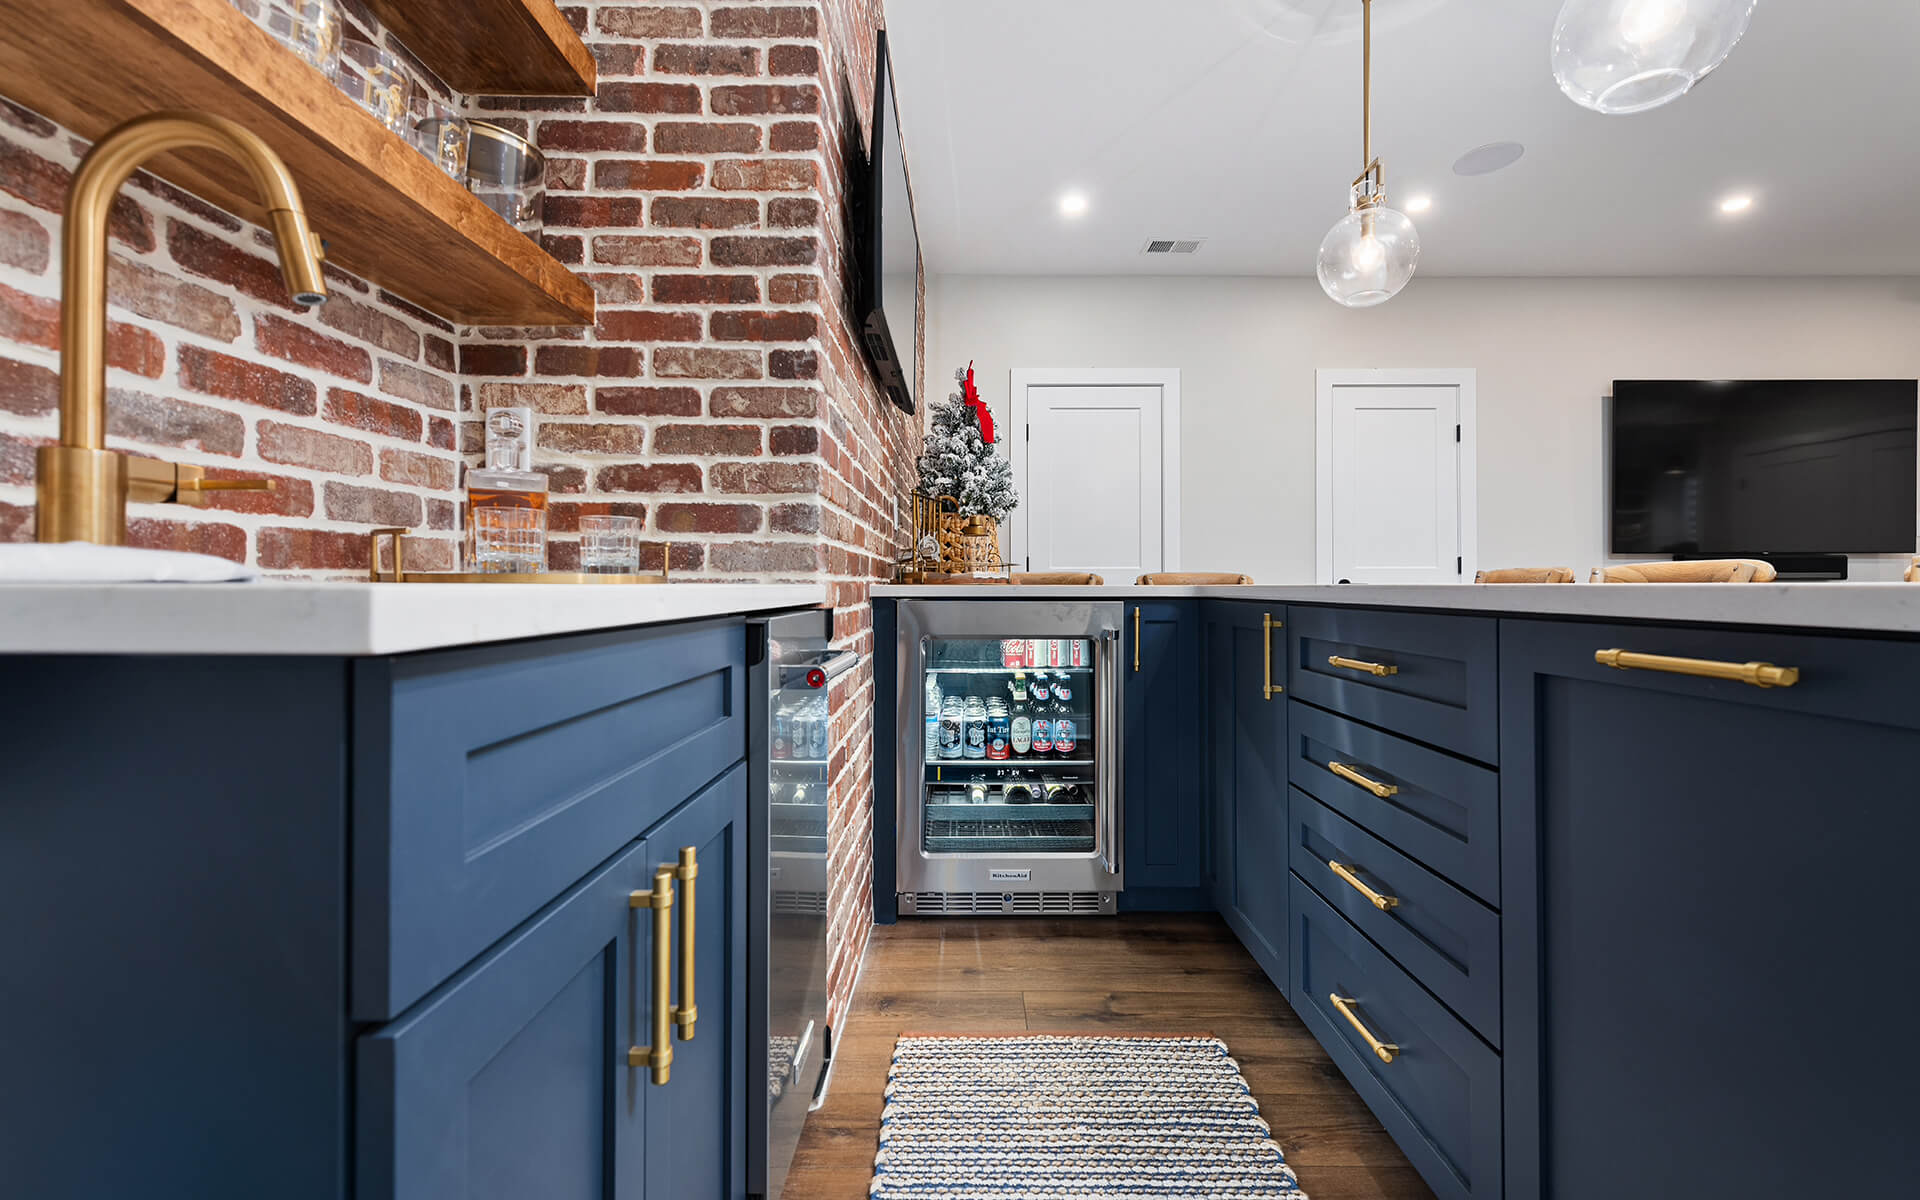 Finished Basement Project - Custom Cabinetry & Wet Bar